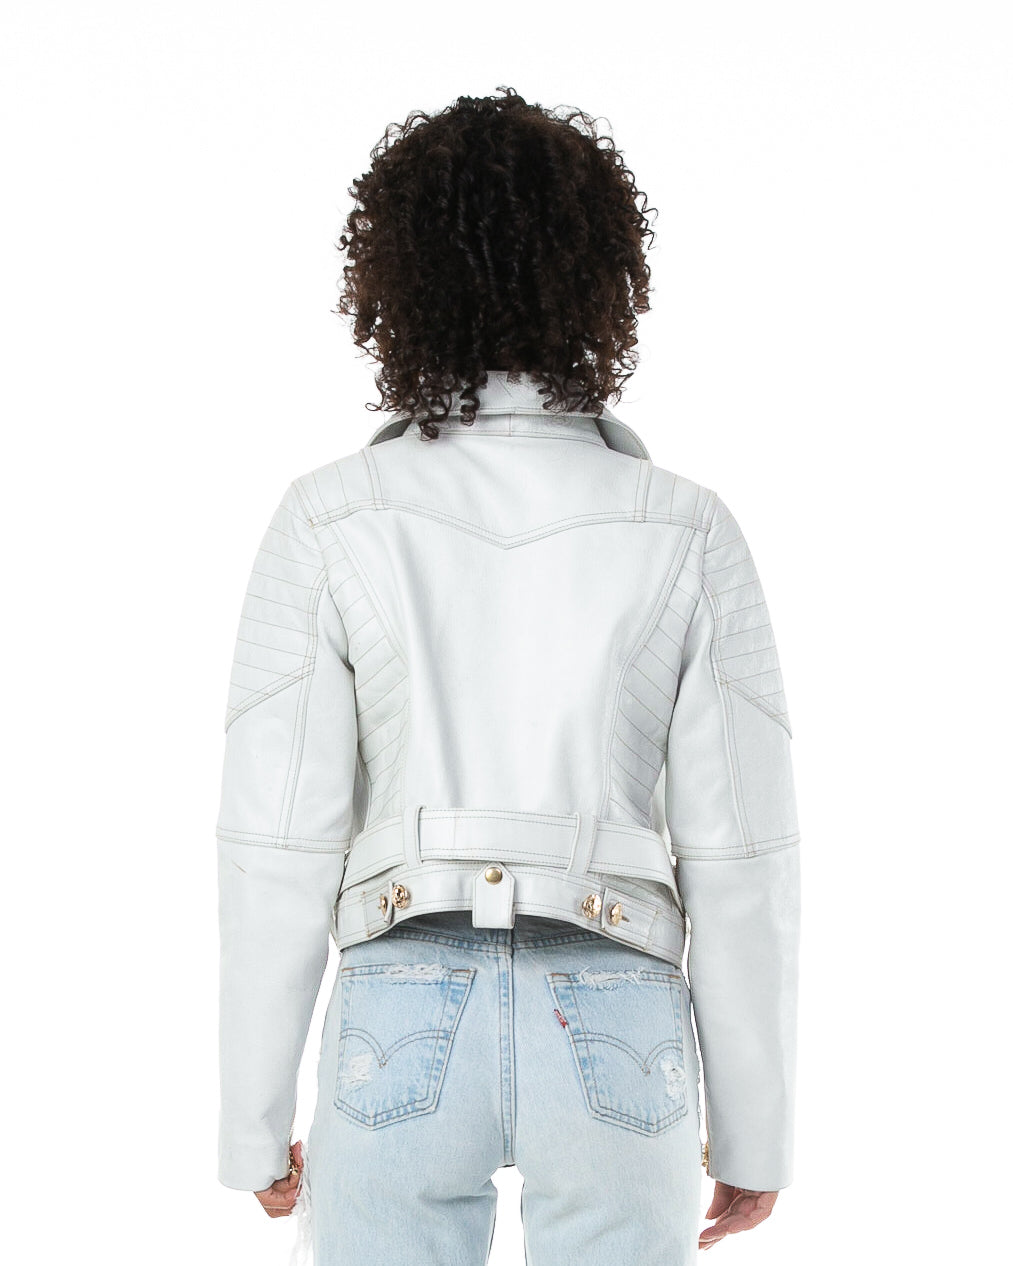 Backside of female model wearing Prince leather jacket